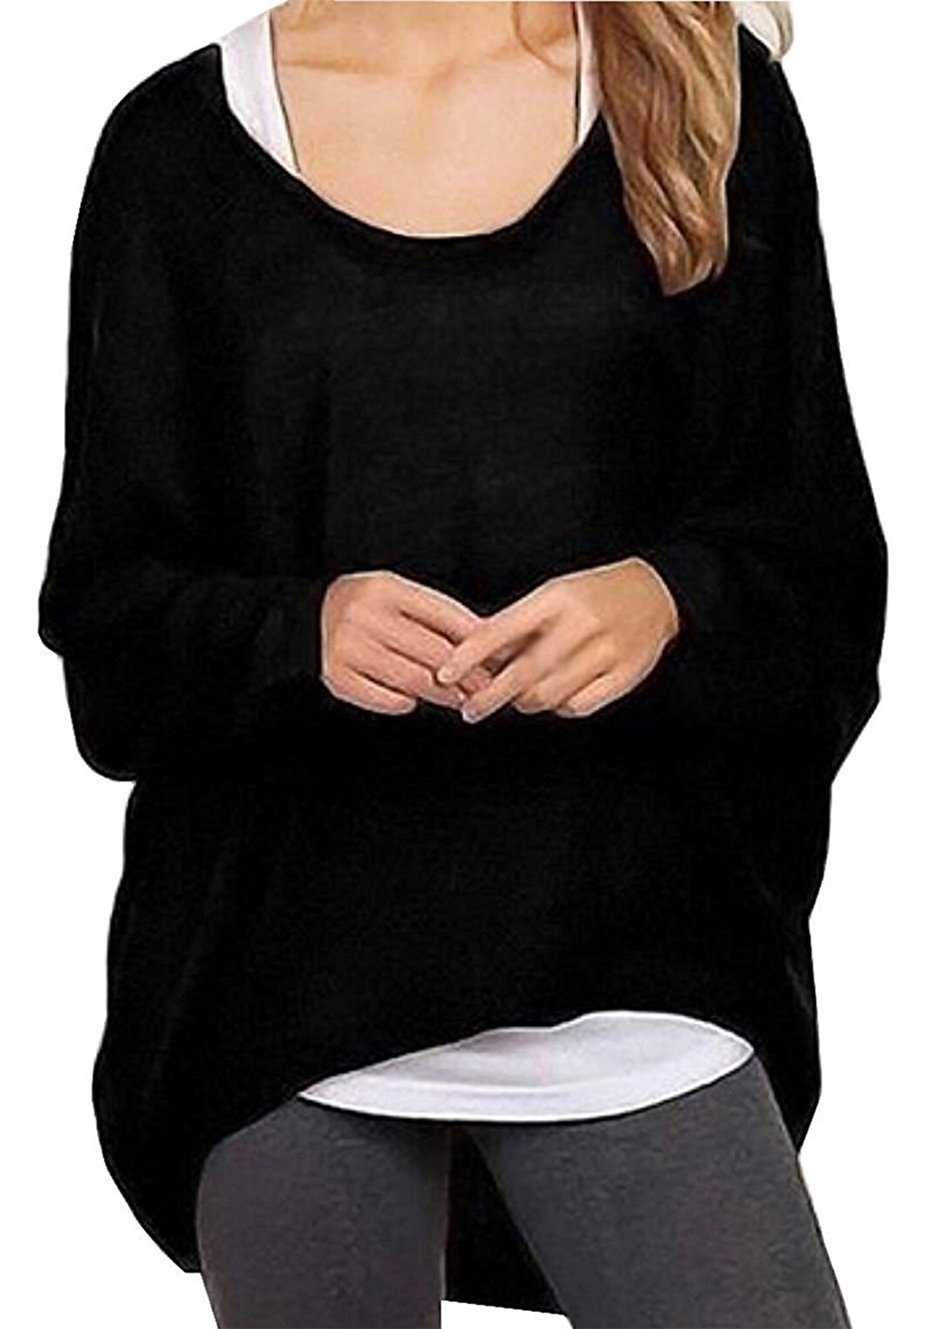 Guandiif Women Casual Baggy Tops Batwing Sleeve Shirts Loose Slouchy Pullover Blouse Sweater For Women Black L